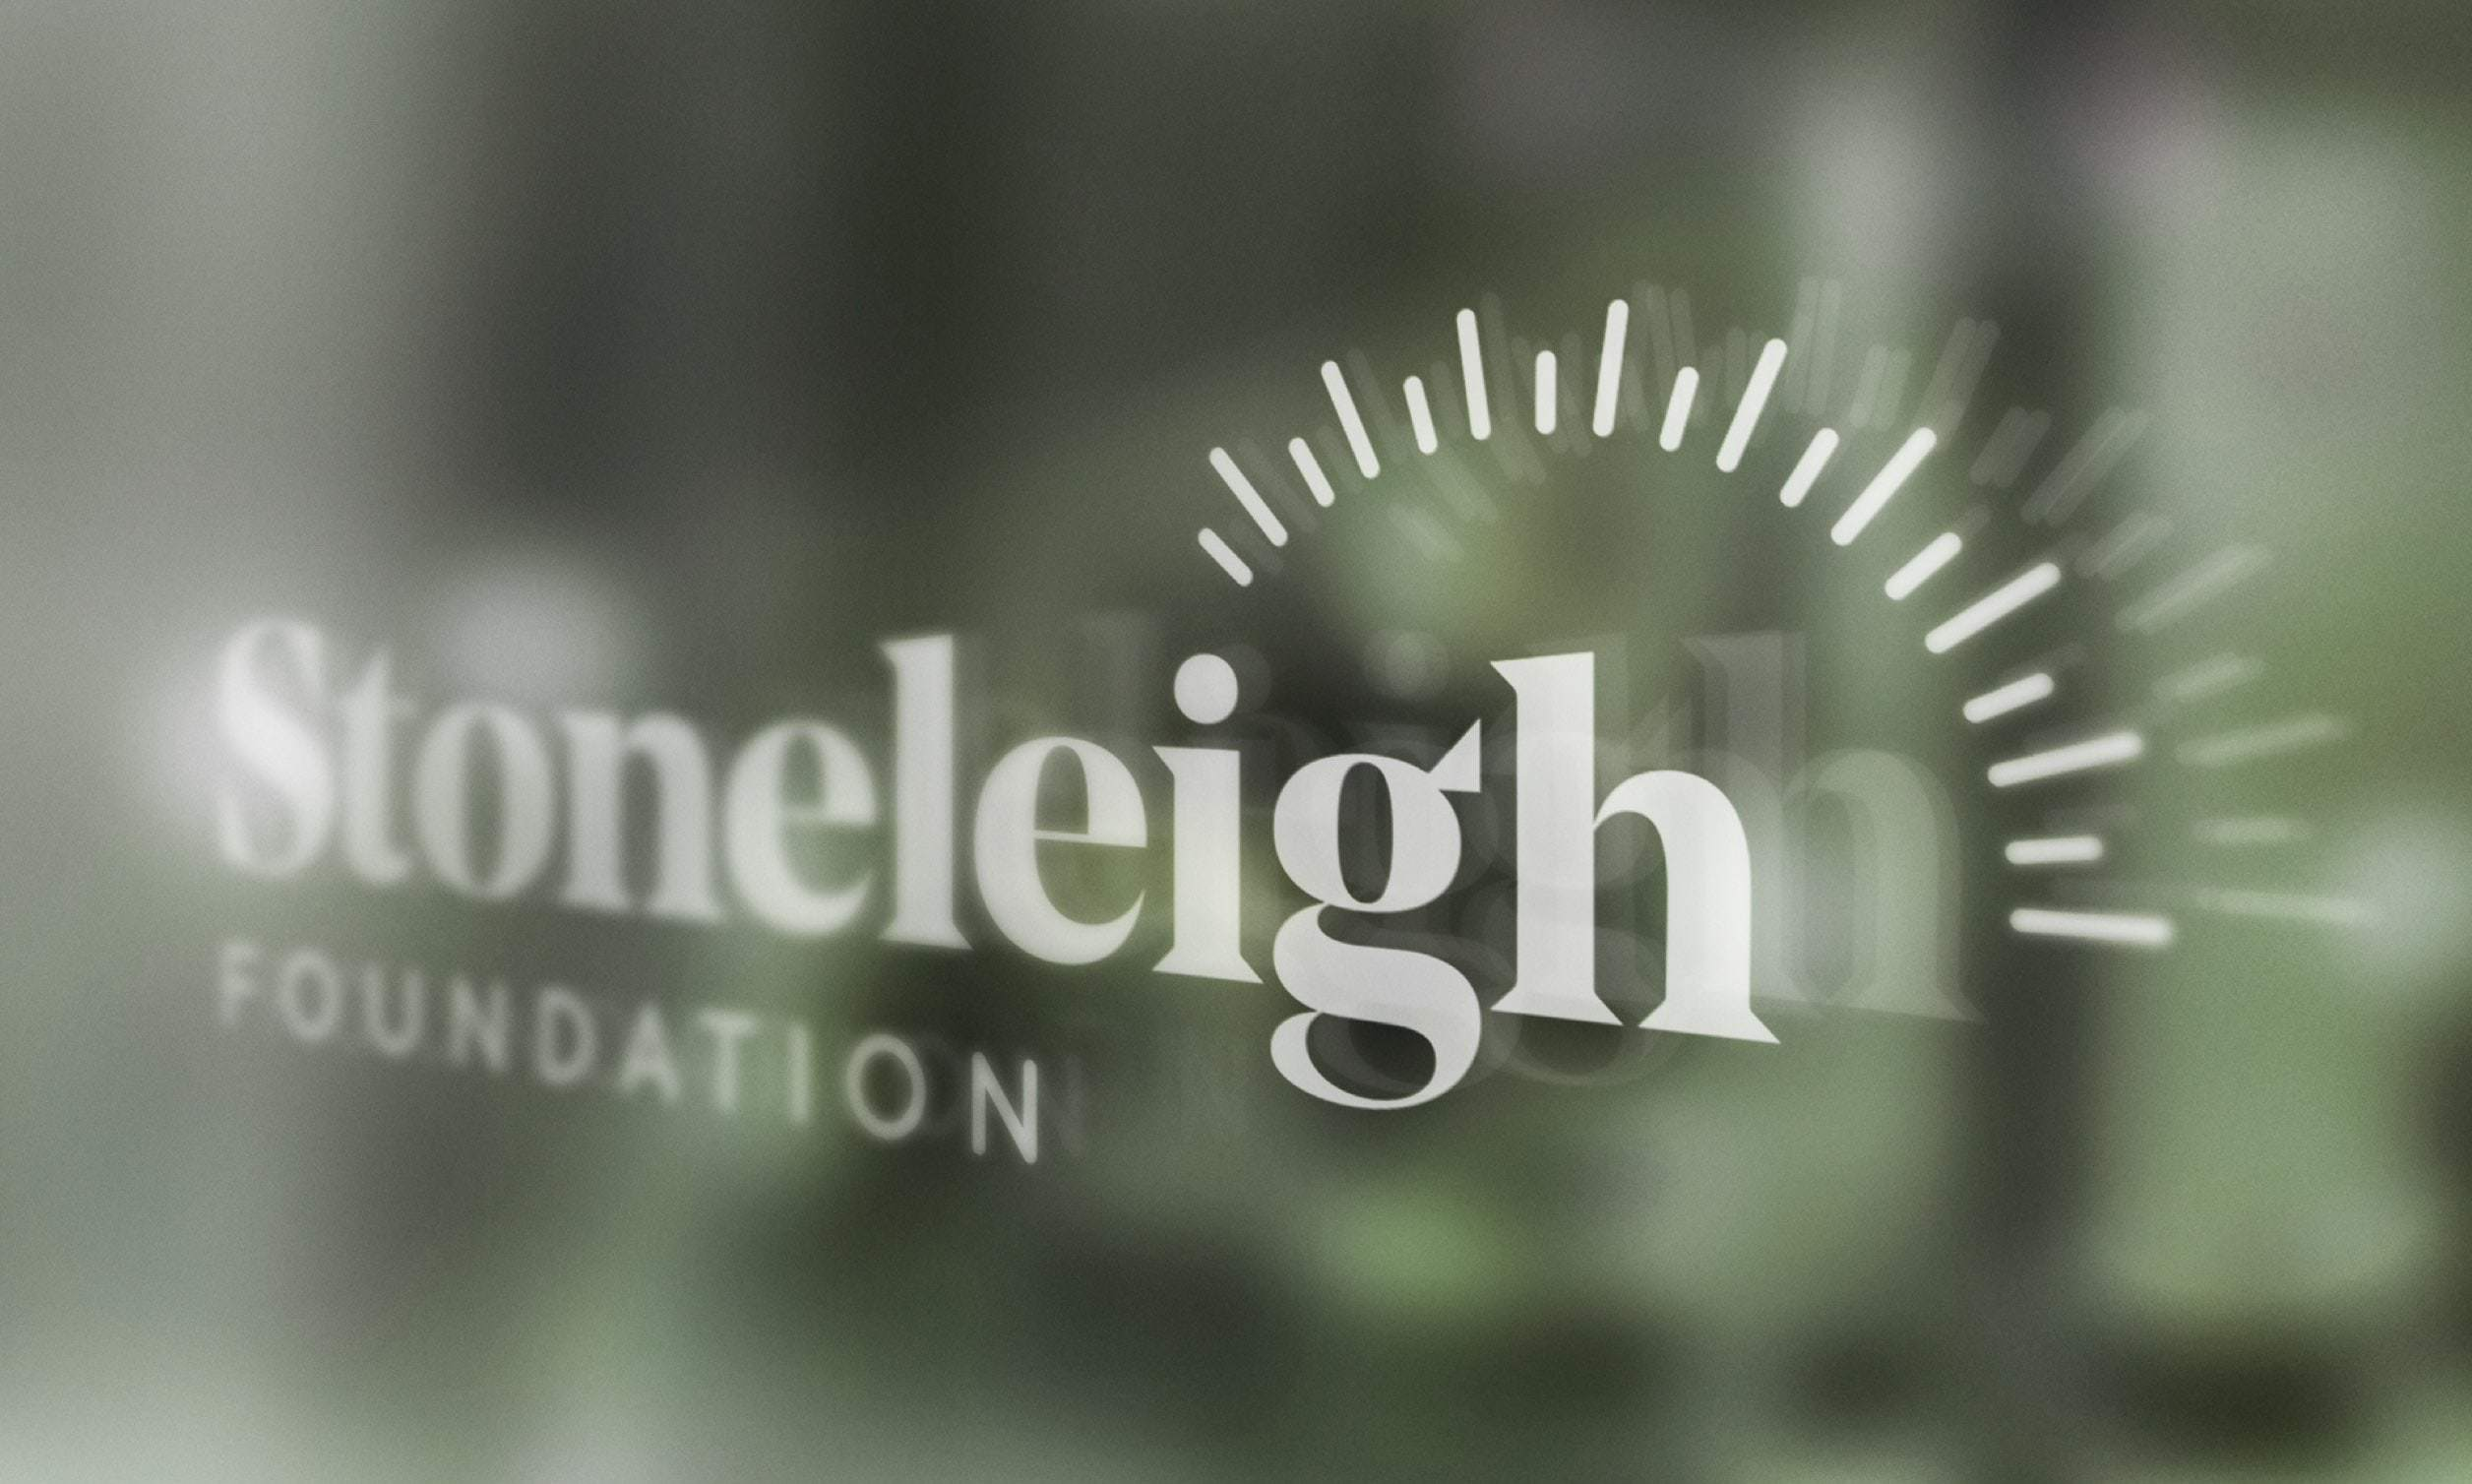 Stoneleigh Logo Window Inline